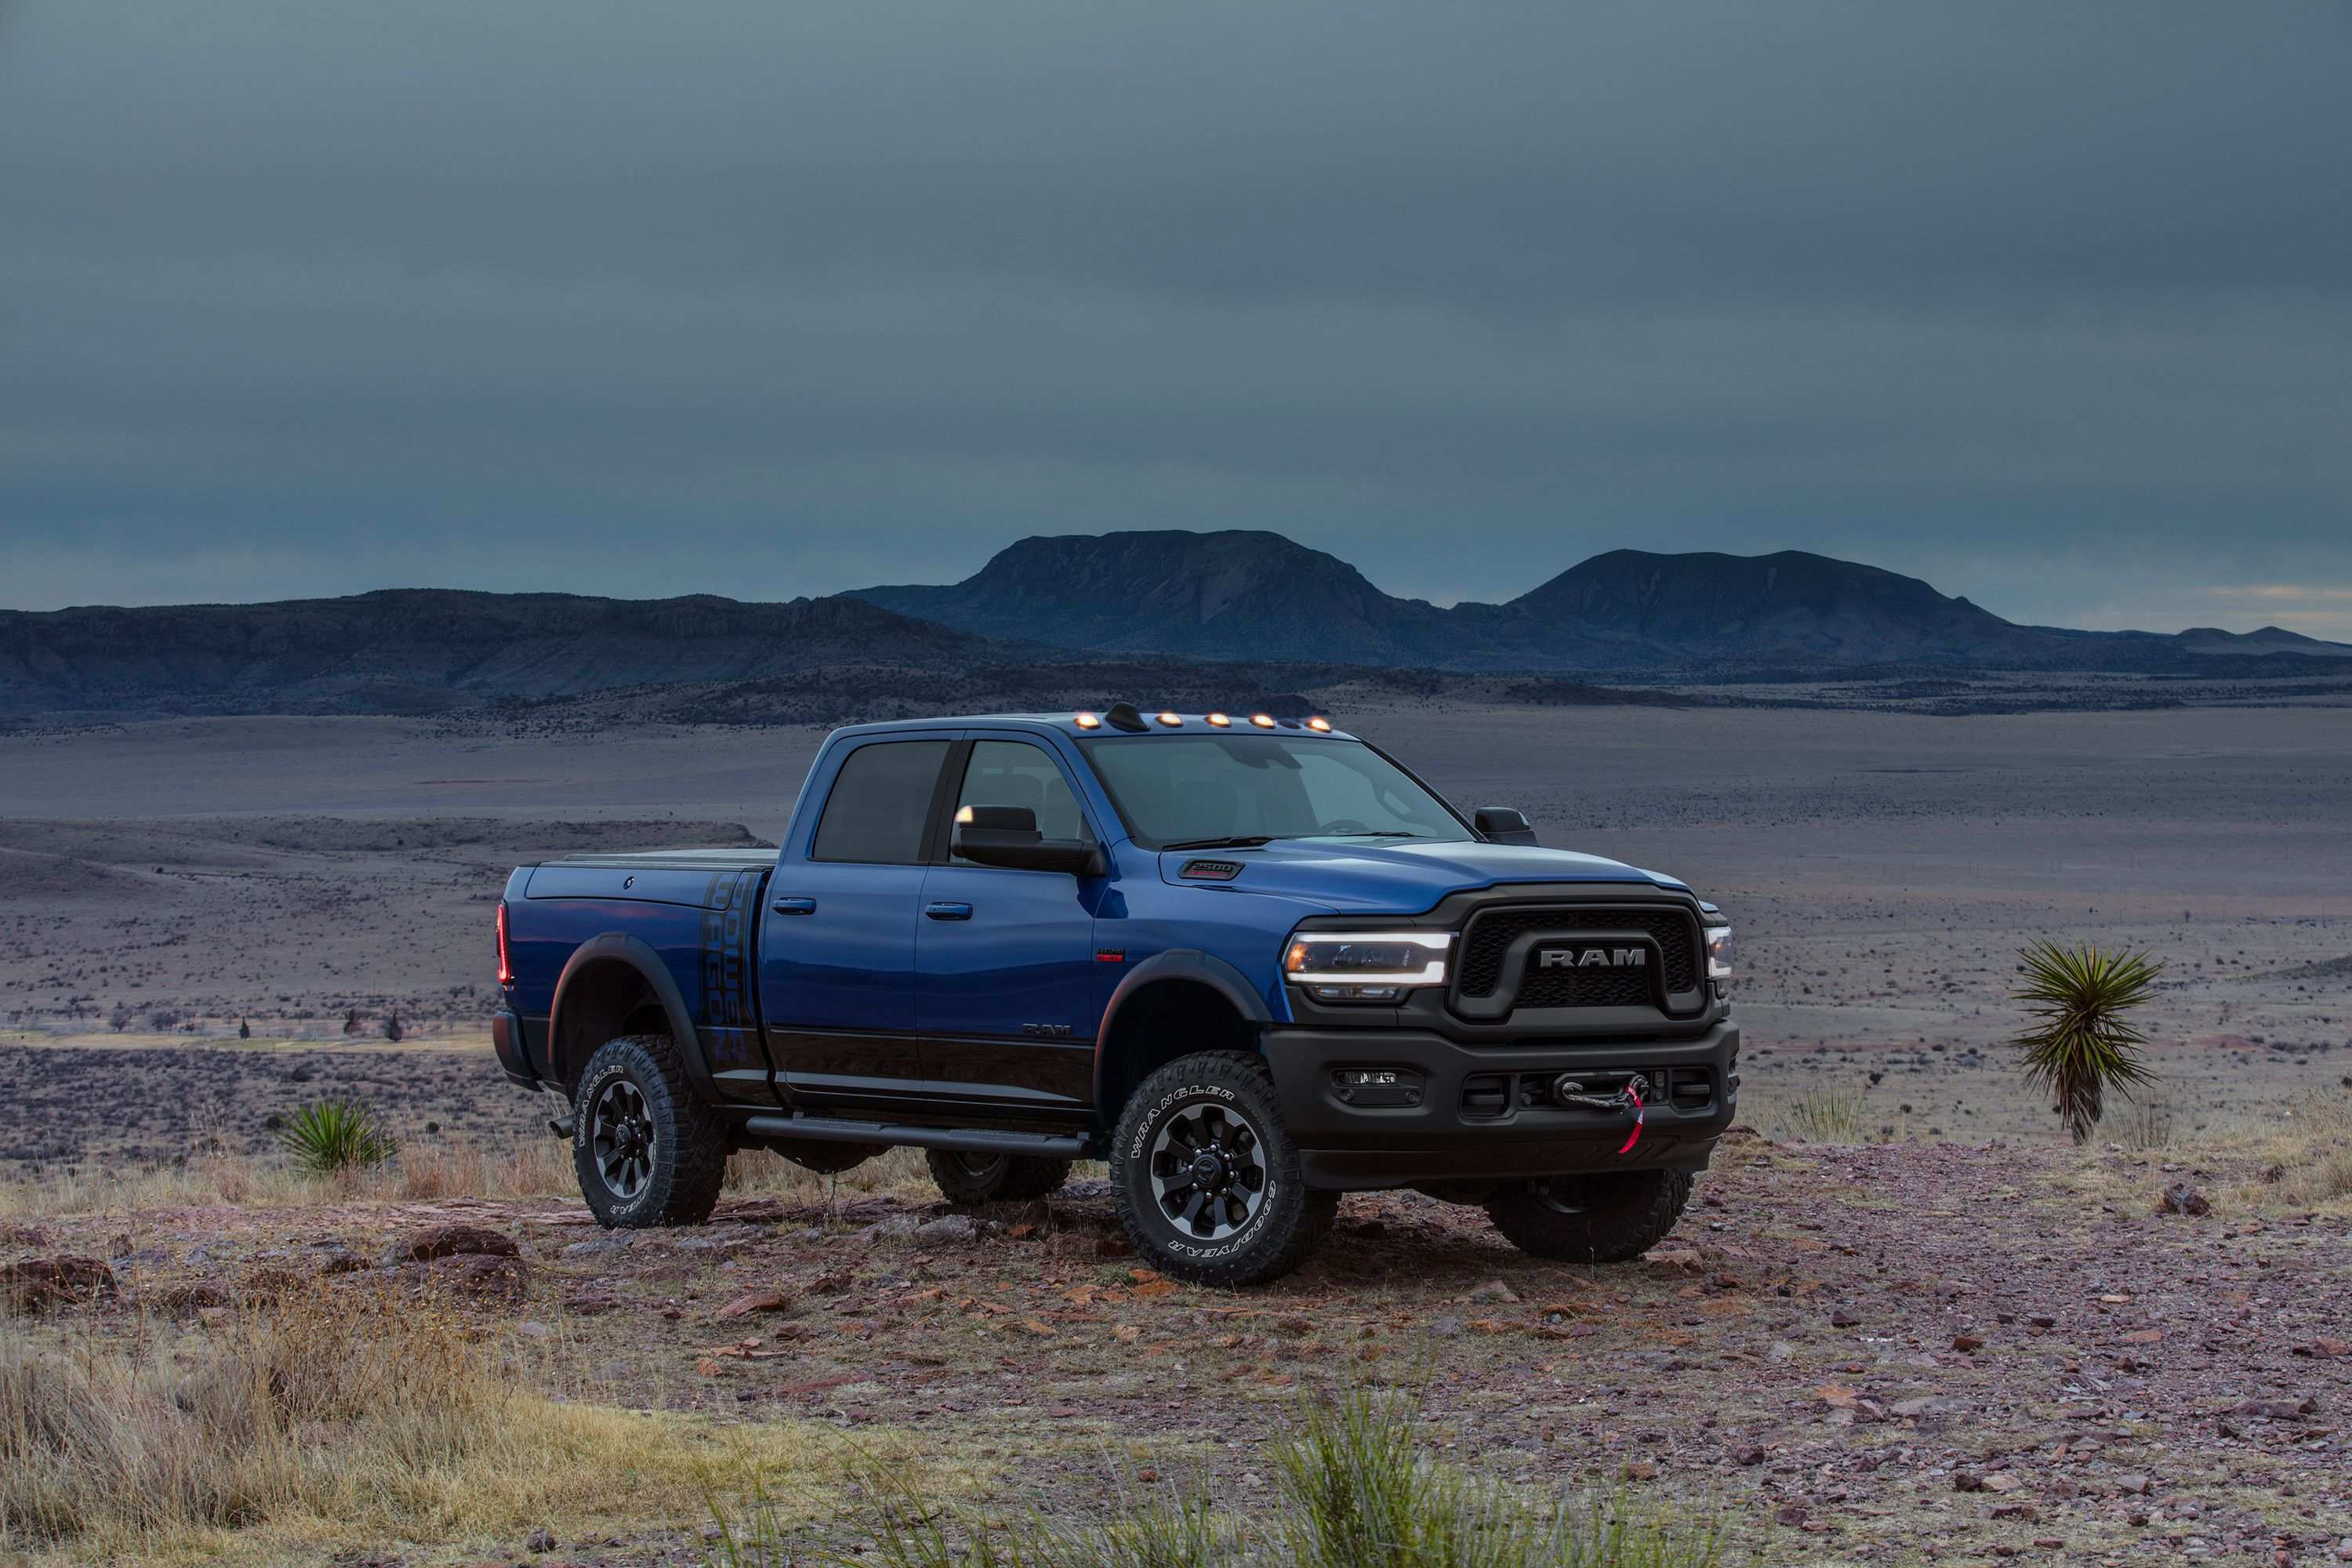 74 Gallery of 2020 Dodge Ram 2500 For Sale New Concept for 2020 Dodge Ram 2500 For Sale